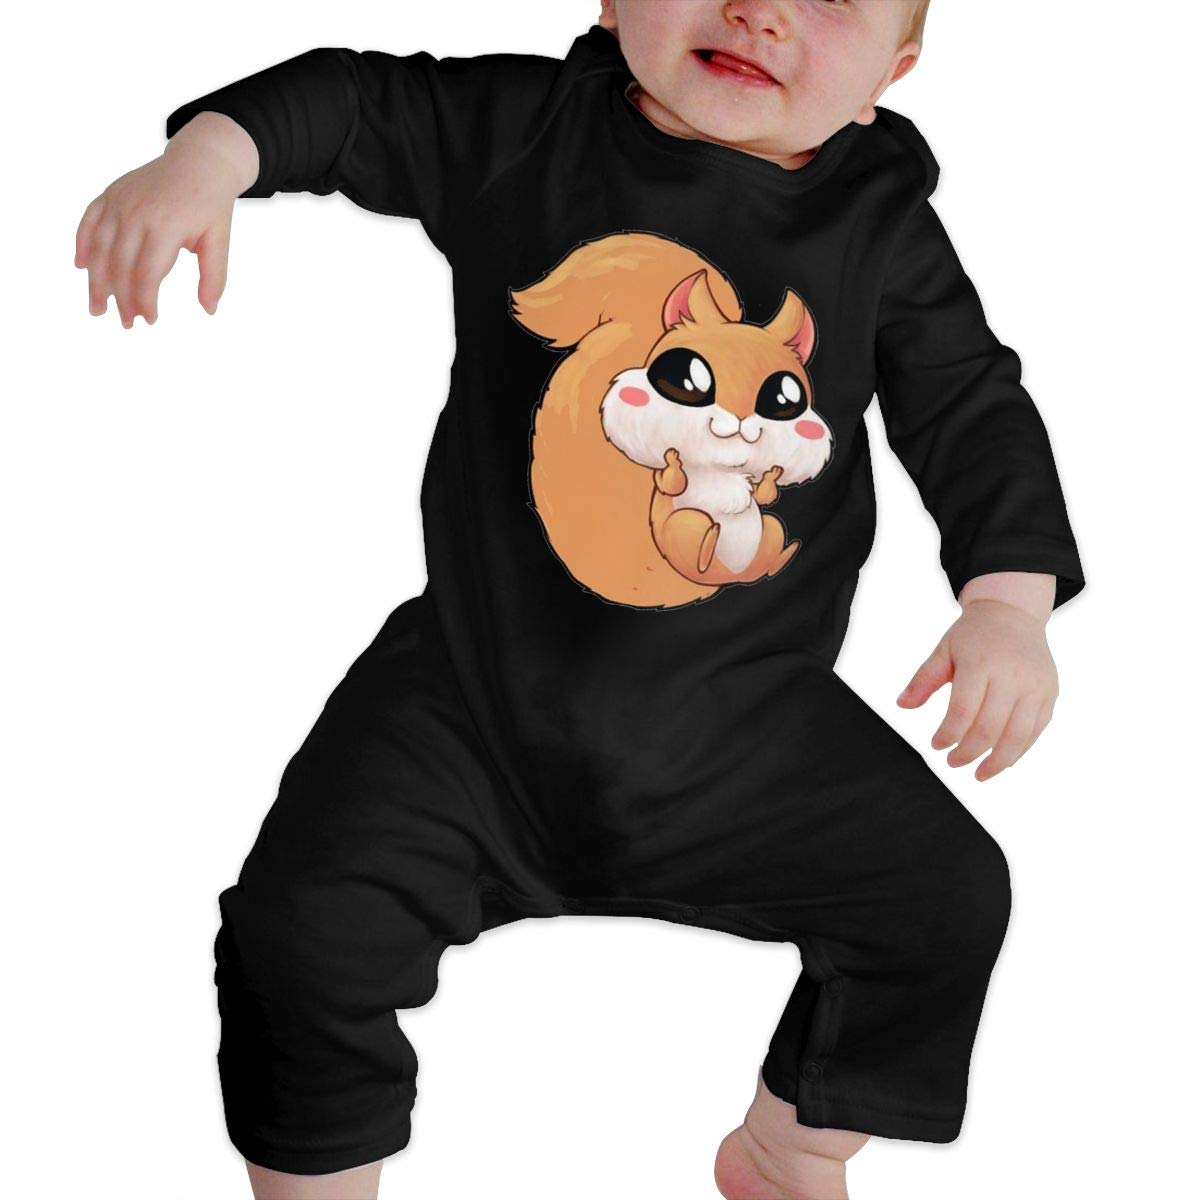 Fasenix Anime Squirrel Newborn Baby Boy Girl Romper Jumpsuit Long Sleeve Bodysuit Overalls Outfits Clothes